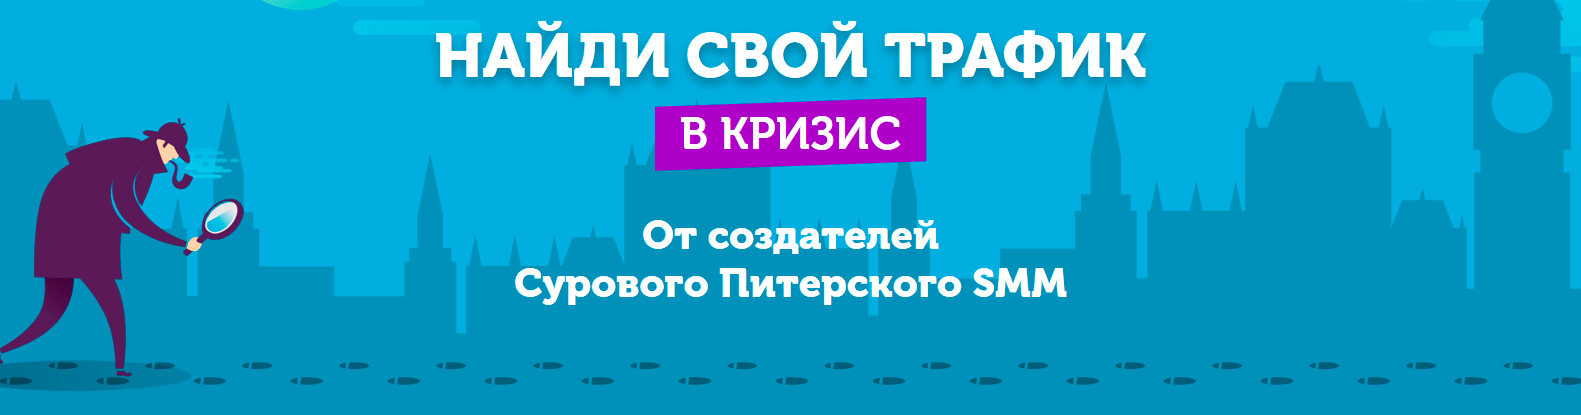 find-trafic-krizis-1.png